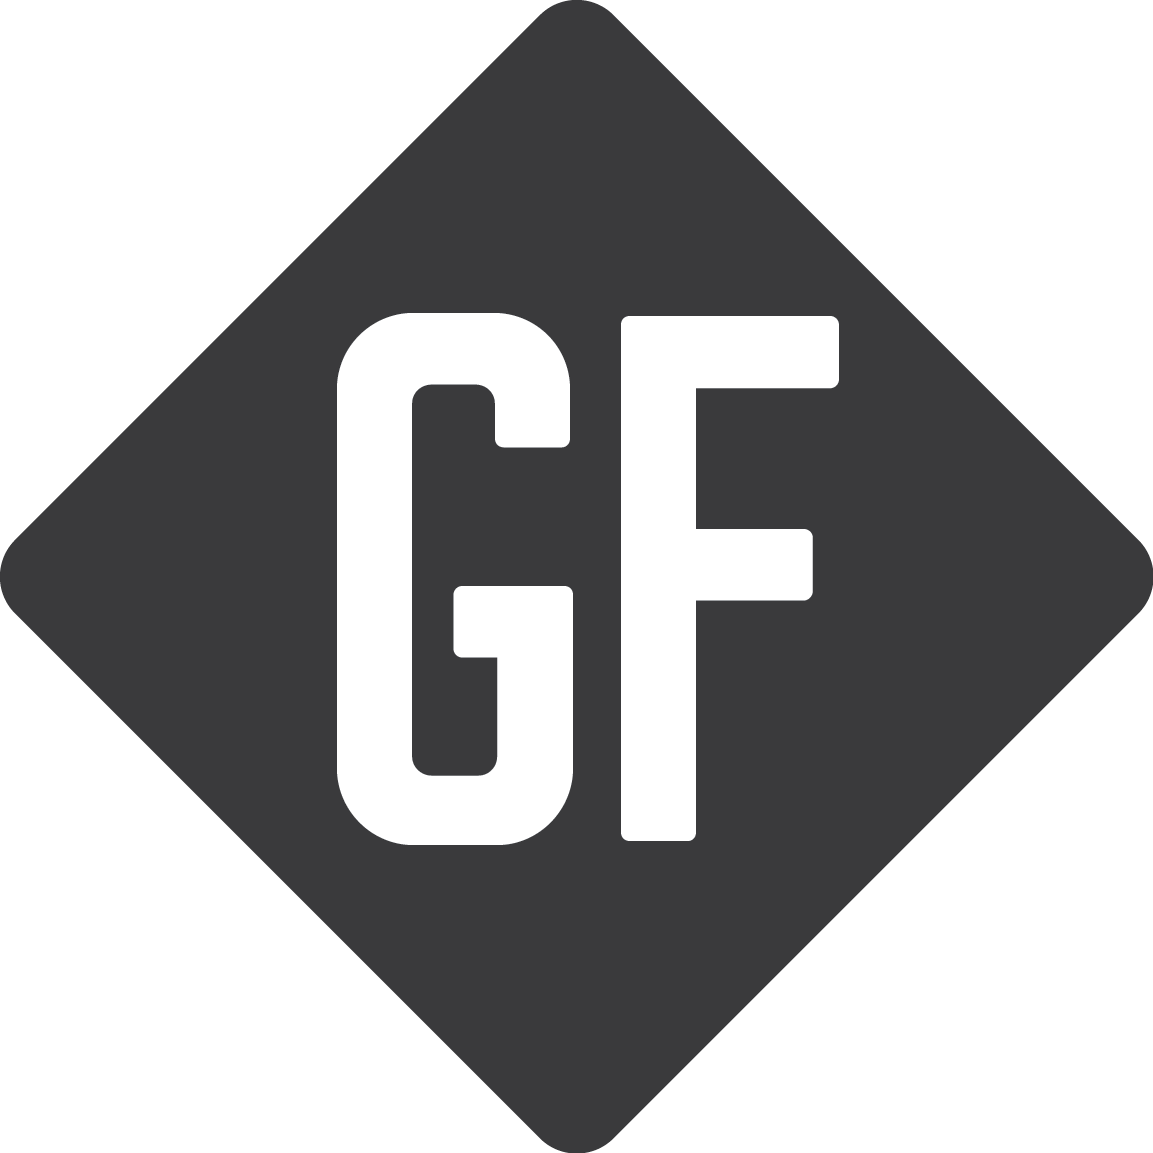 t5_gf_icon_red